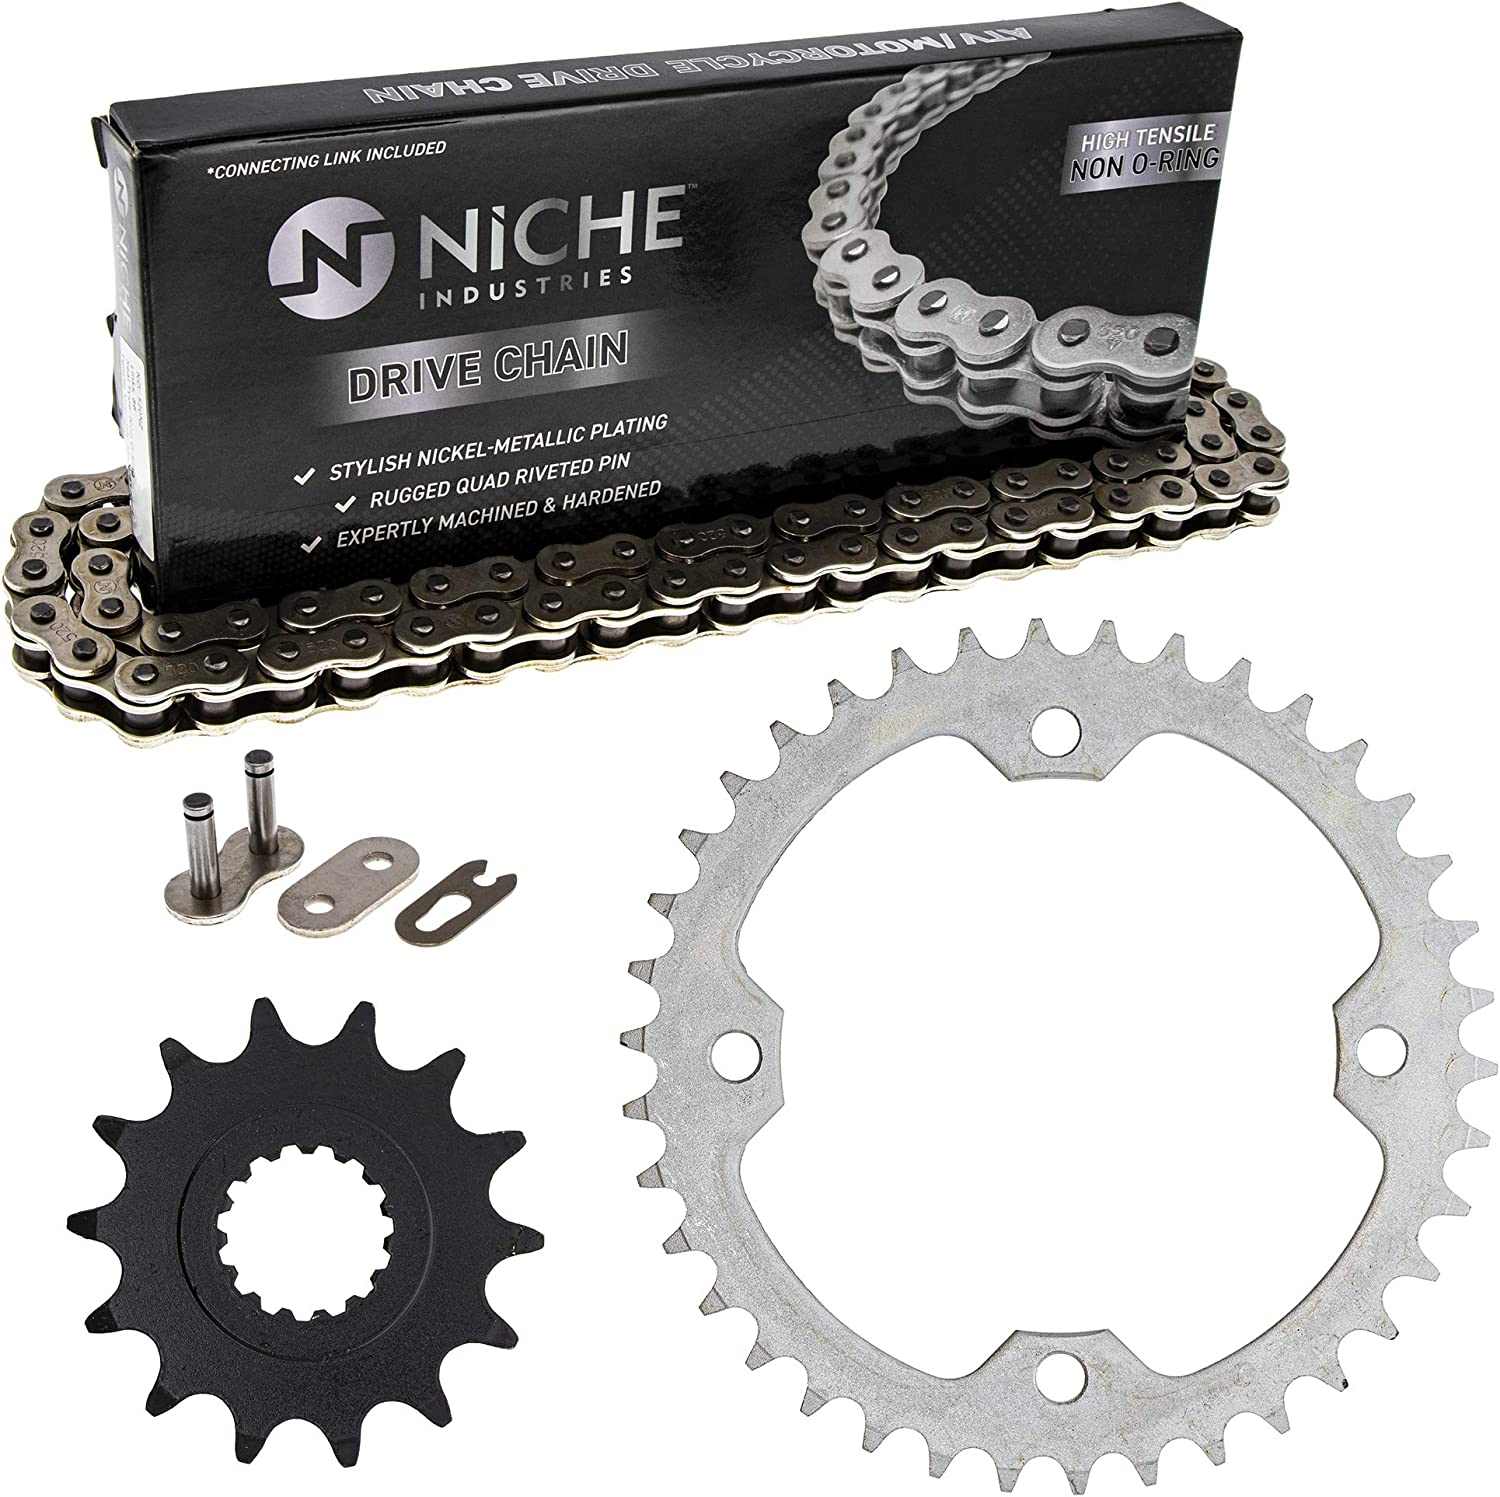 NICHE Drive Sprocket Chain Combo for Yamaha Raptor 700 YFZ450R Front 14 Rear 38 Tooth 520NZ Standard 98 Links